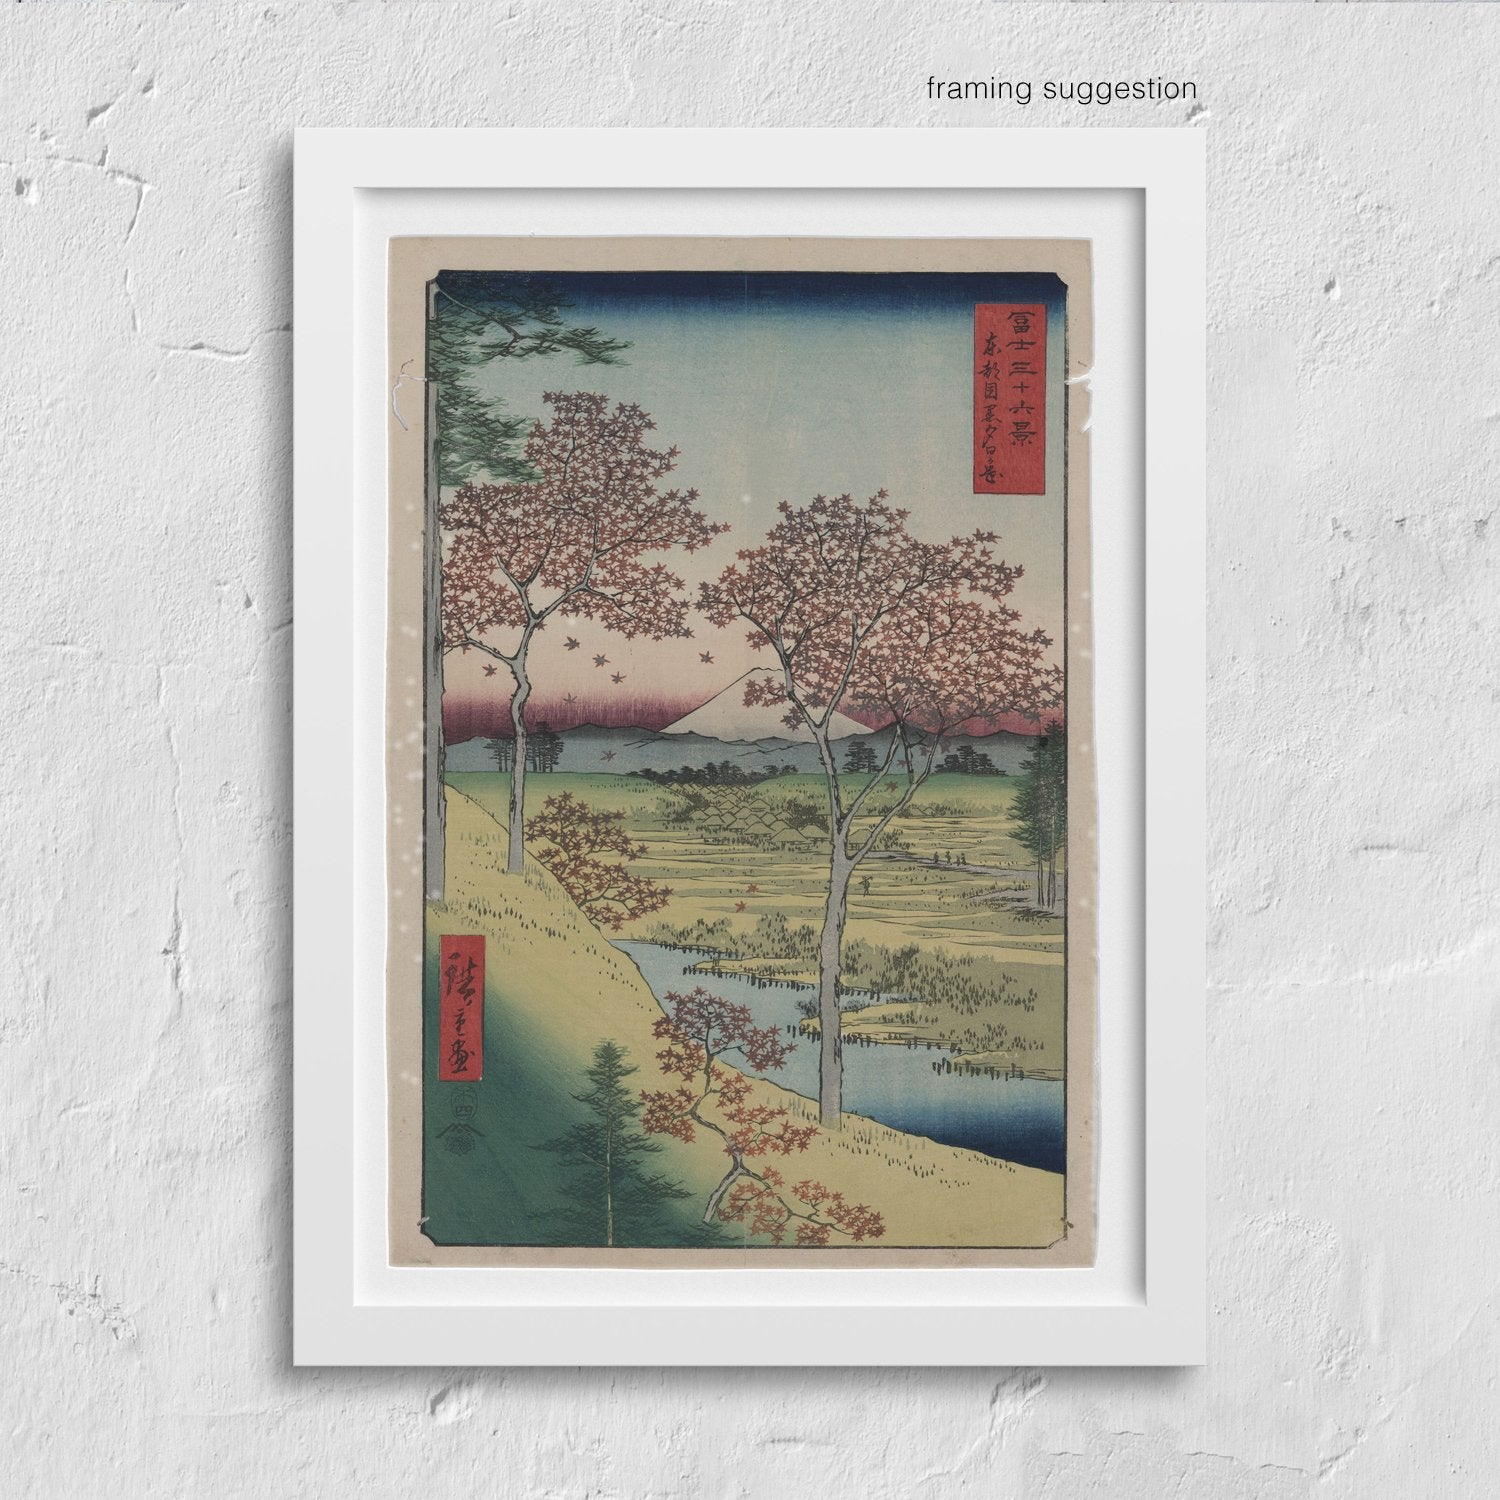 framed 1850 watercolour of autumn leaves by japanese artist Ando Hiroshige